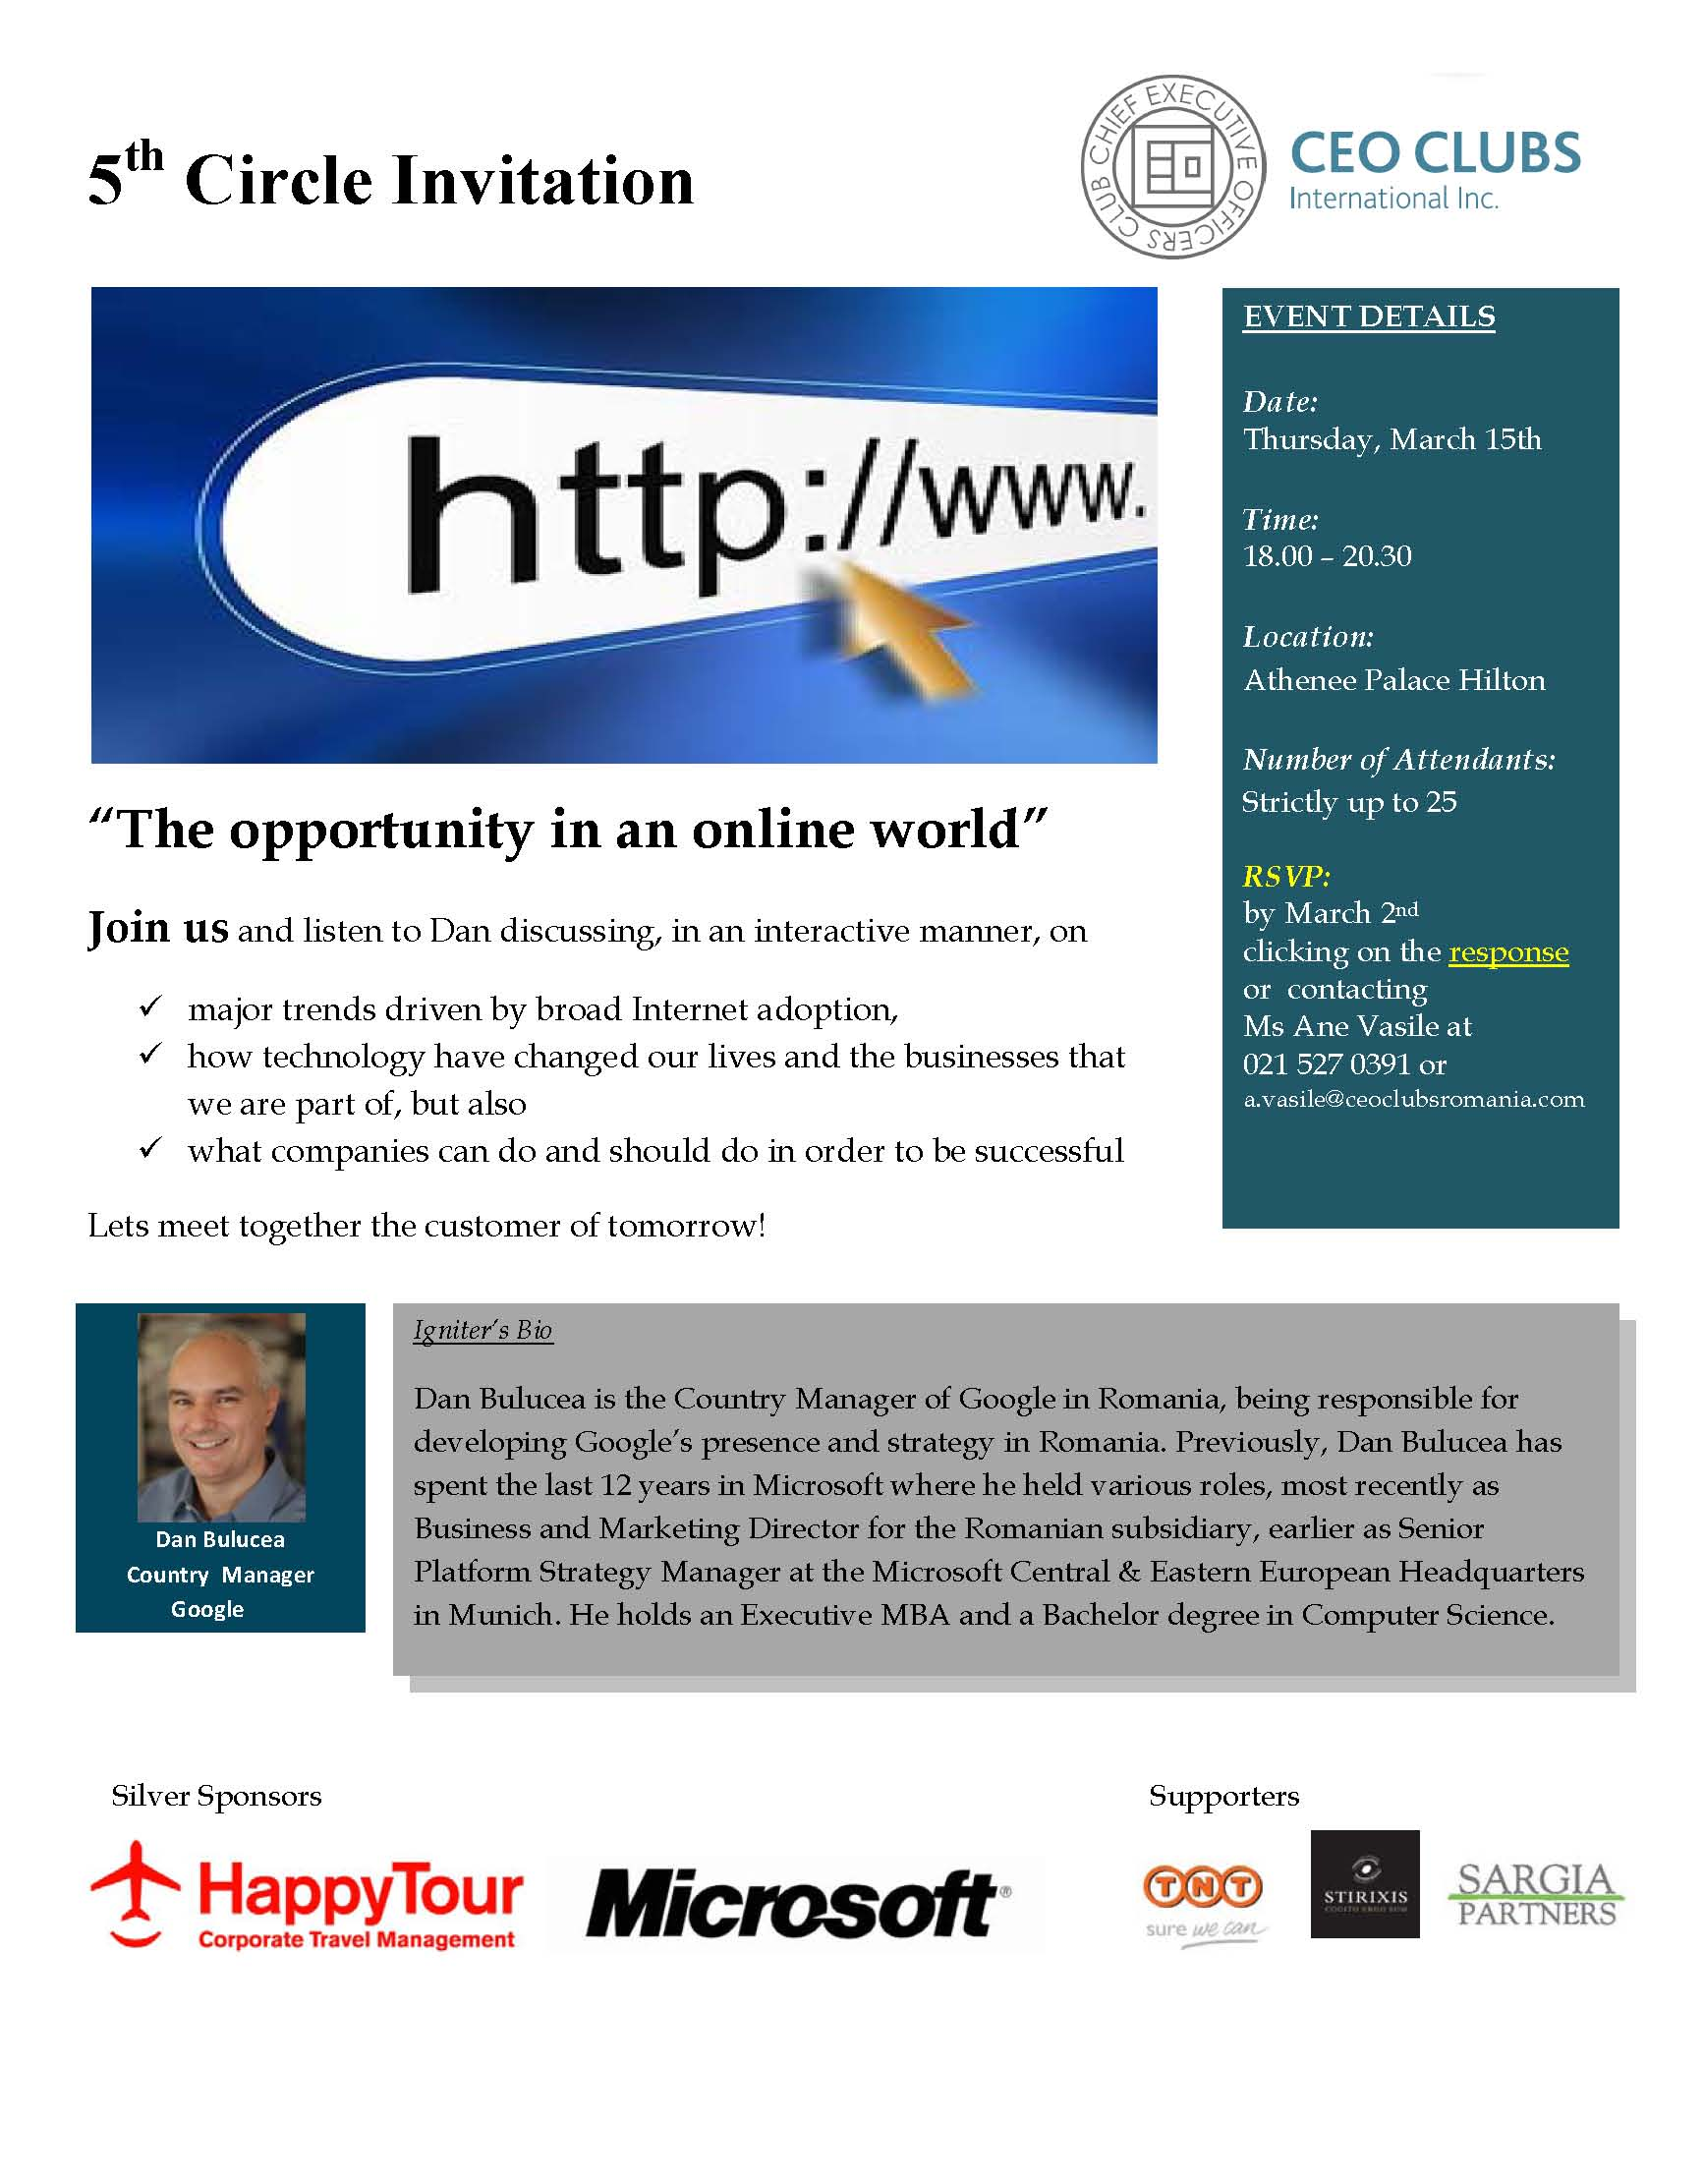 5th Circle: The opportunity in an online world